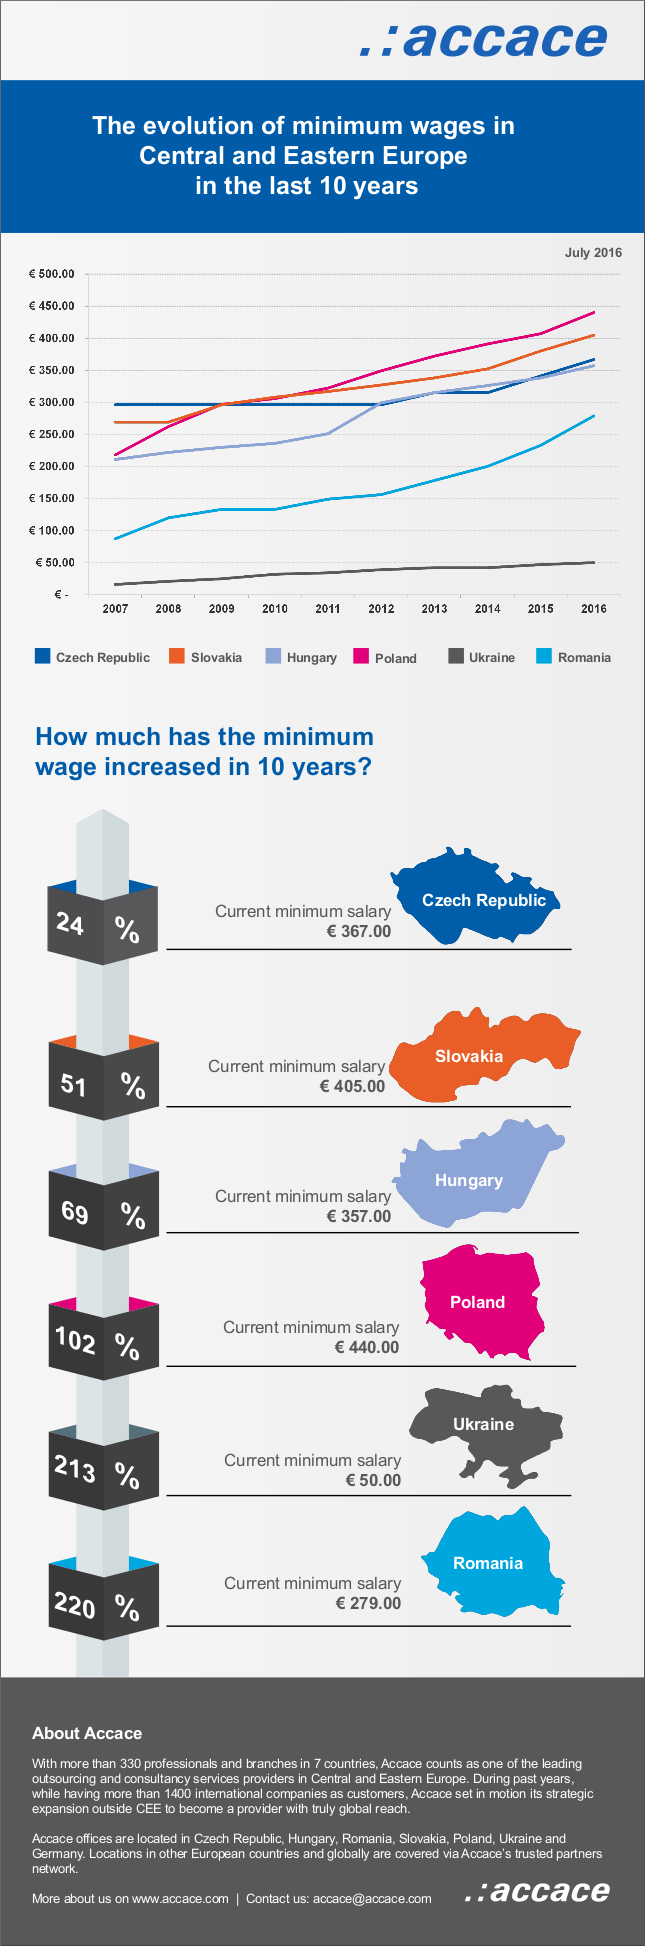 The evolution of minimum wages in central and eastern europe in the last 10 years